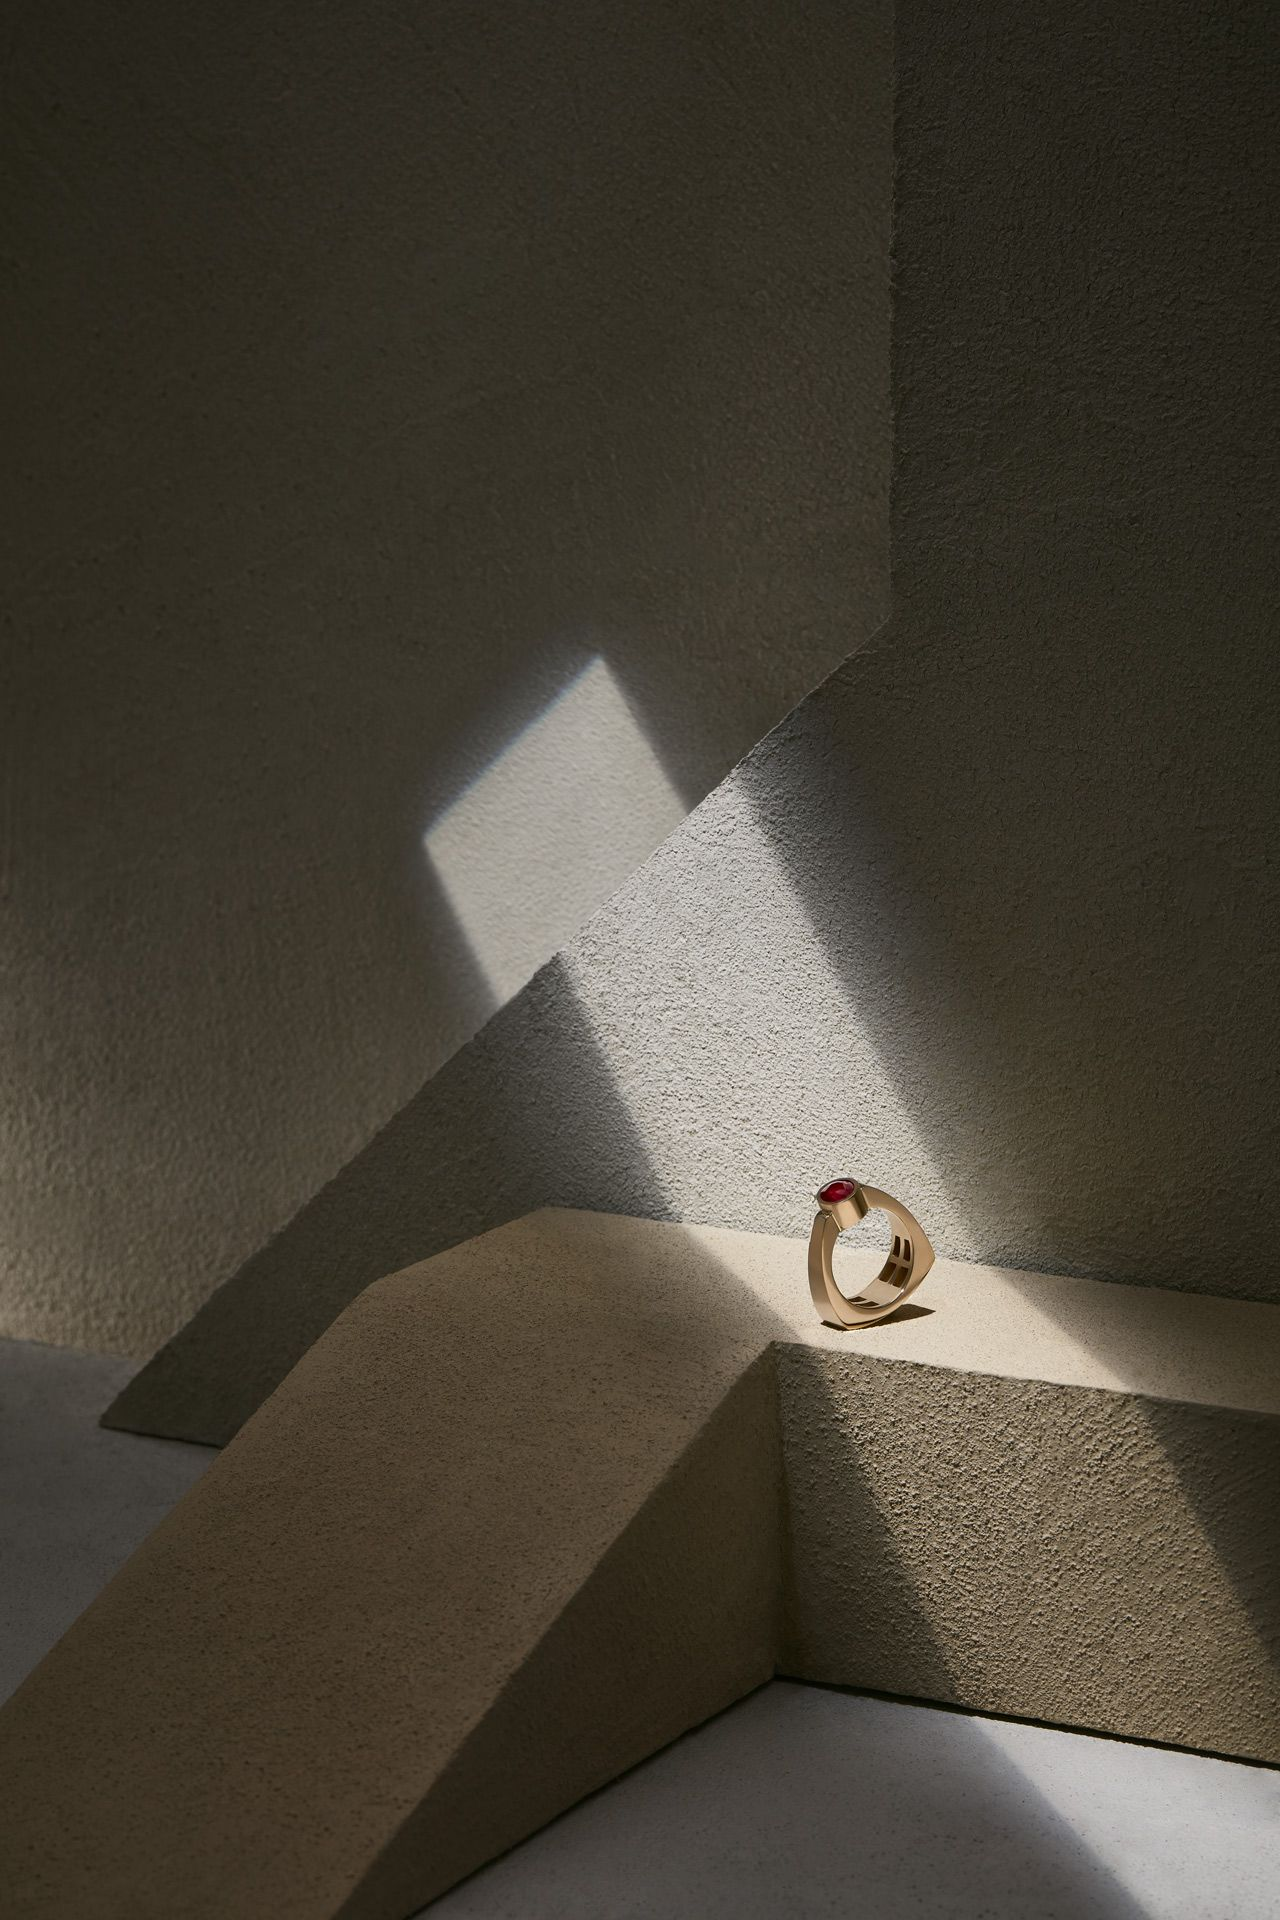 gold ring with red diamond placed in ray of light in cave or vault-like setting by Mathieu Levesque for Morrier jewelry